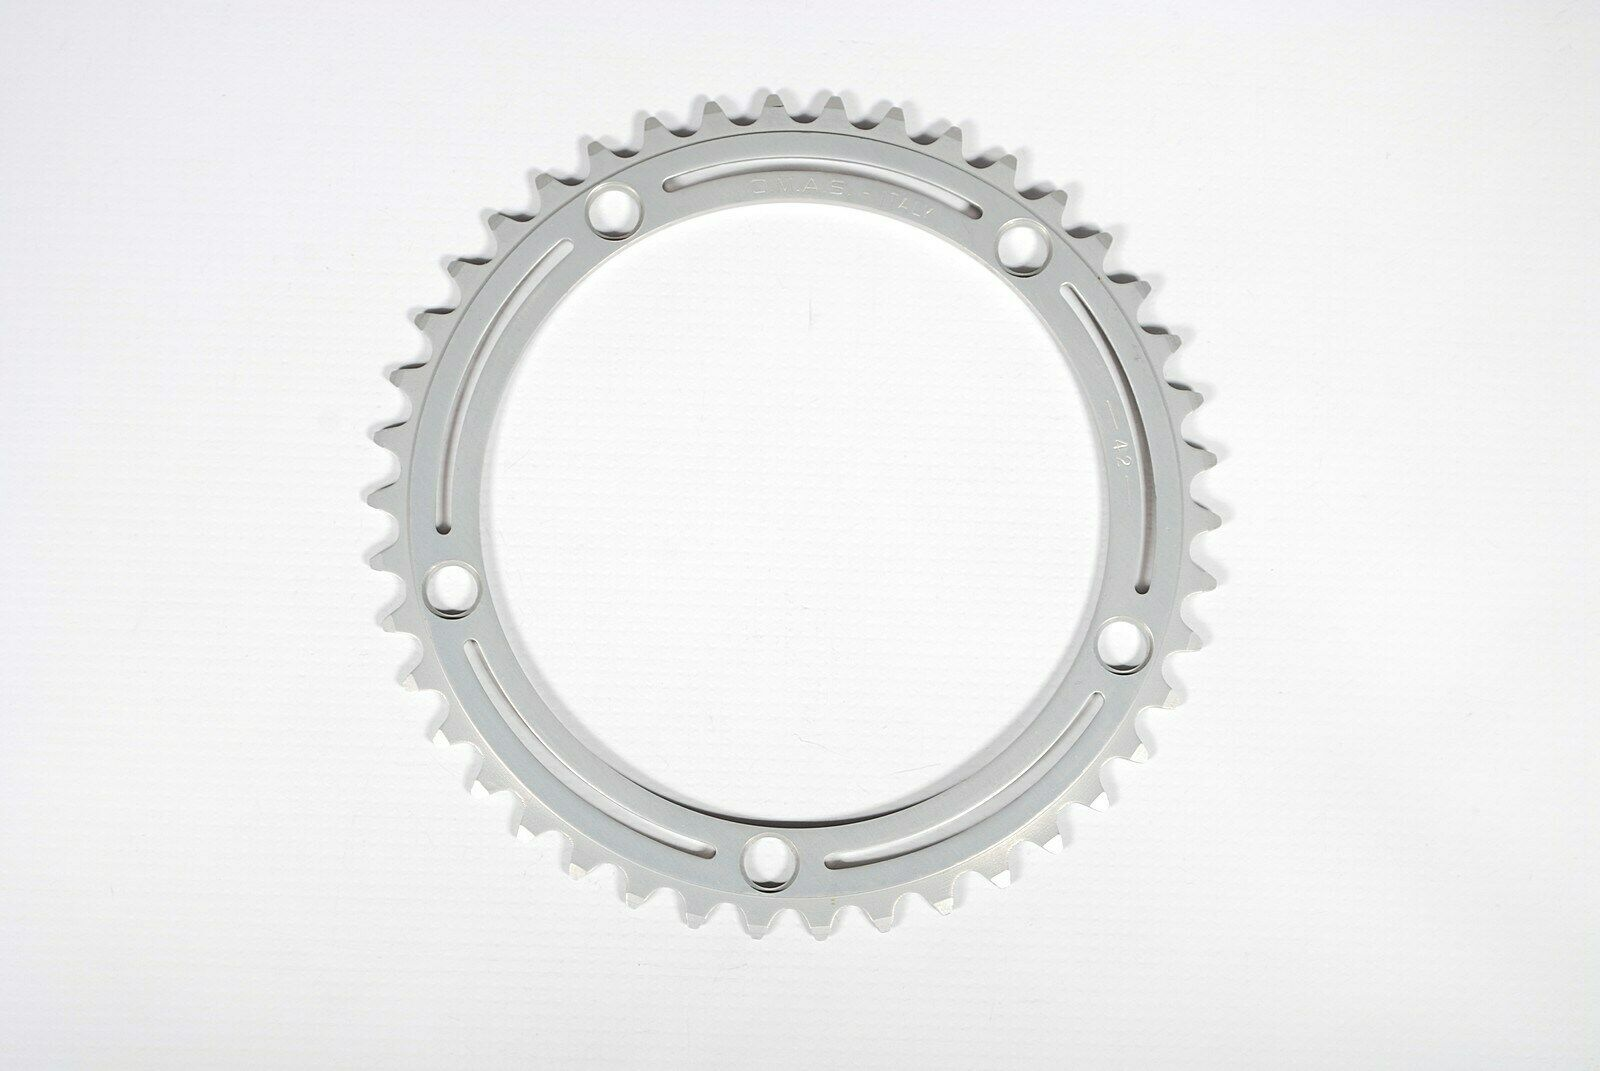 OMAS Bicycle Chainring 42T 144 BCD Retro Parts For Road Bike Cranksets